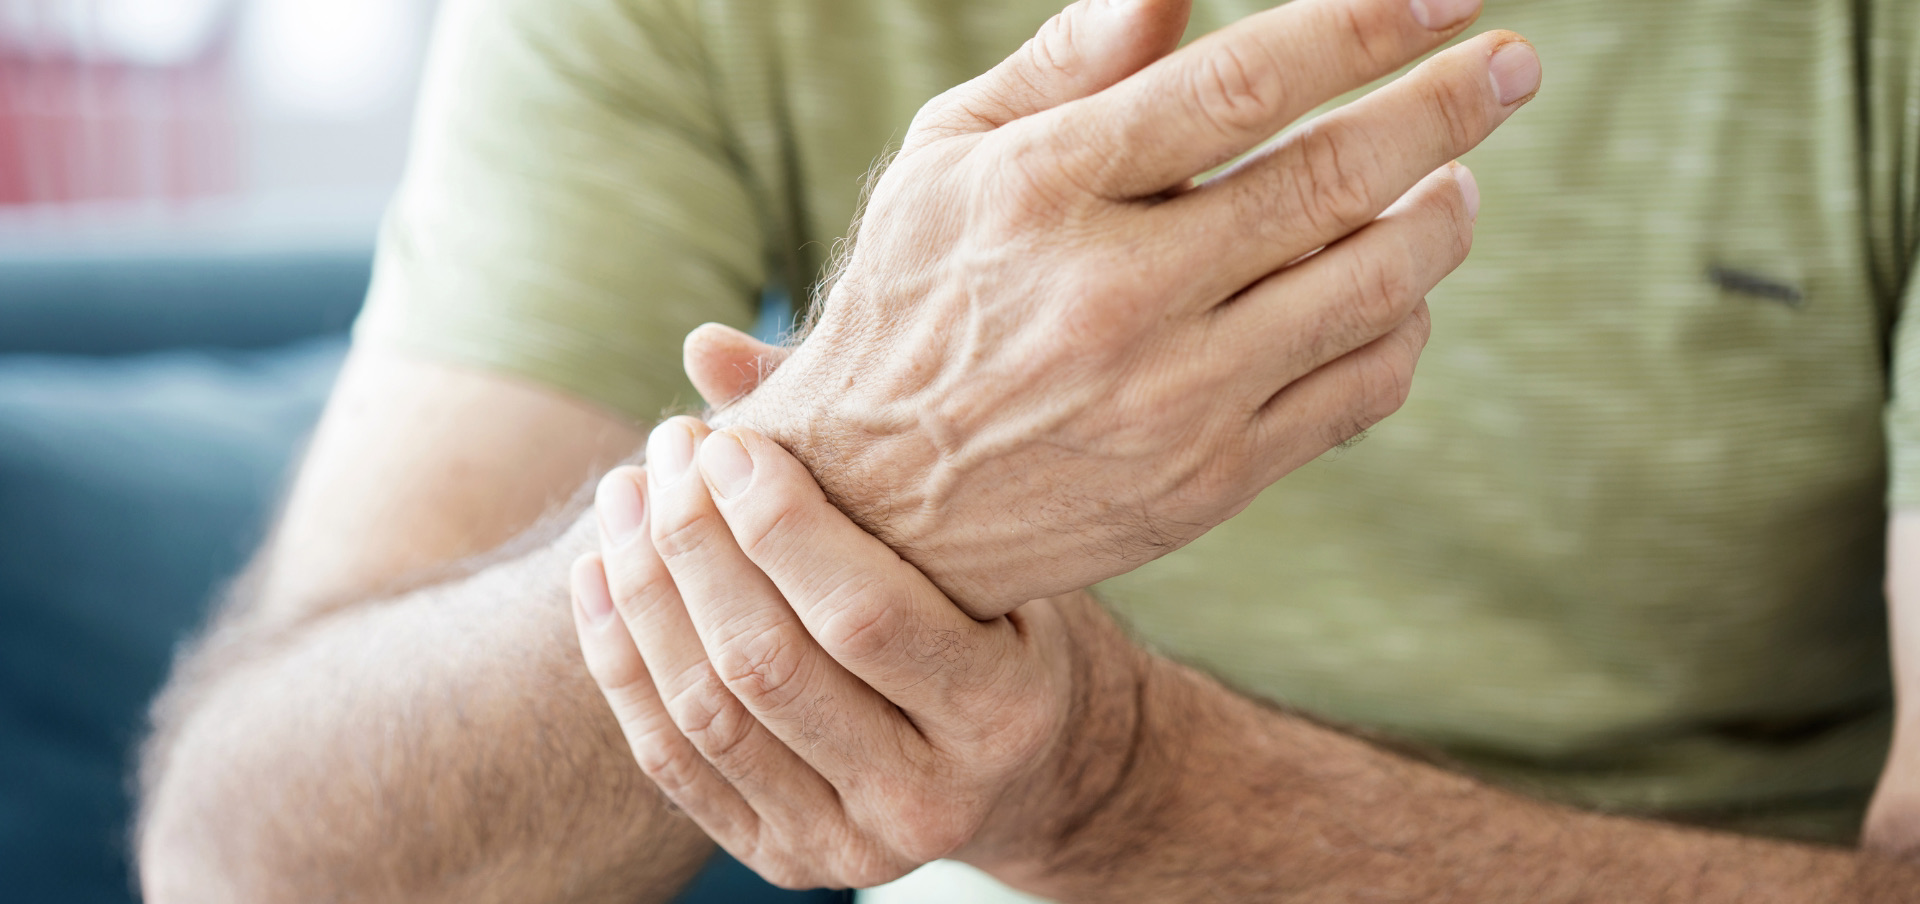 a man experiencing joint pain grabbing his wrist